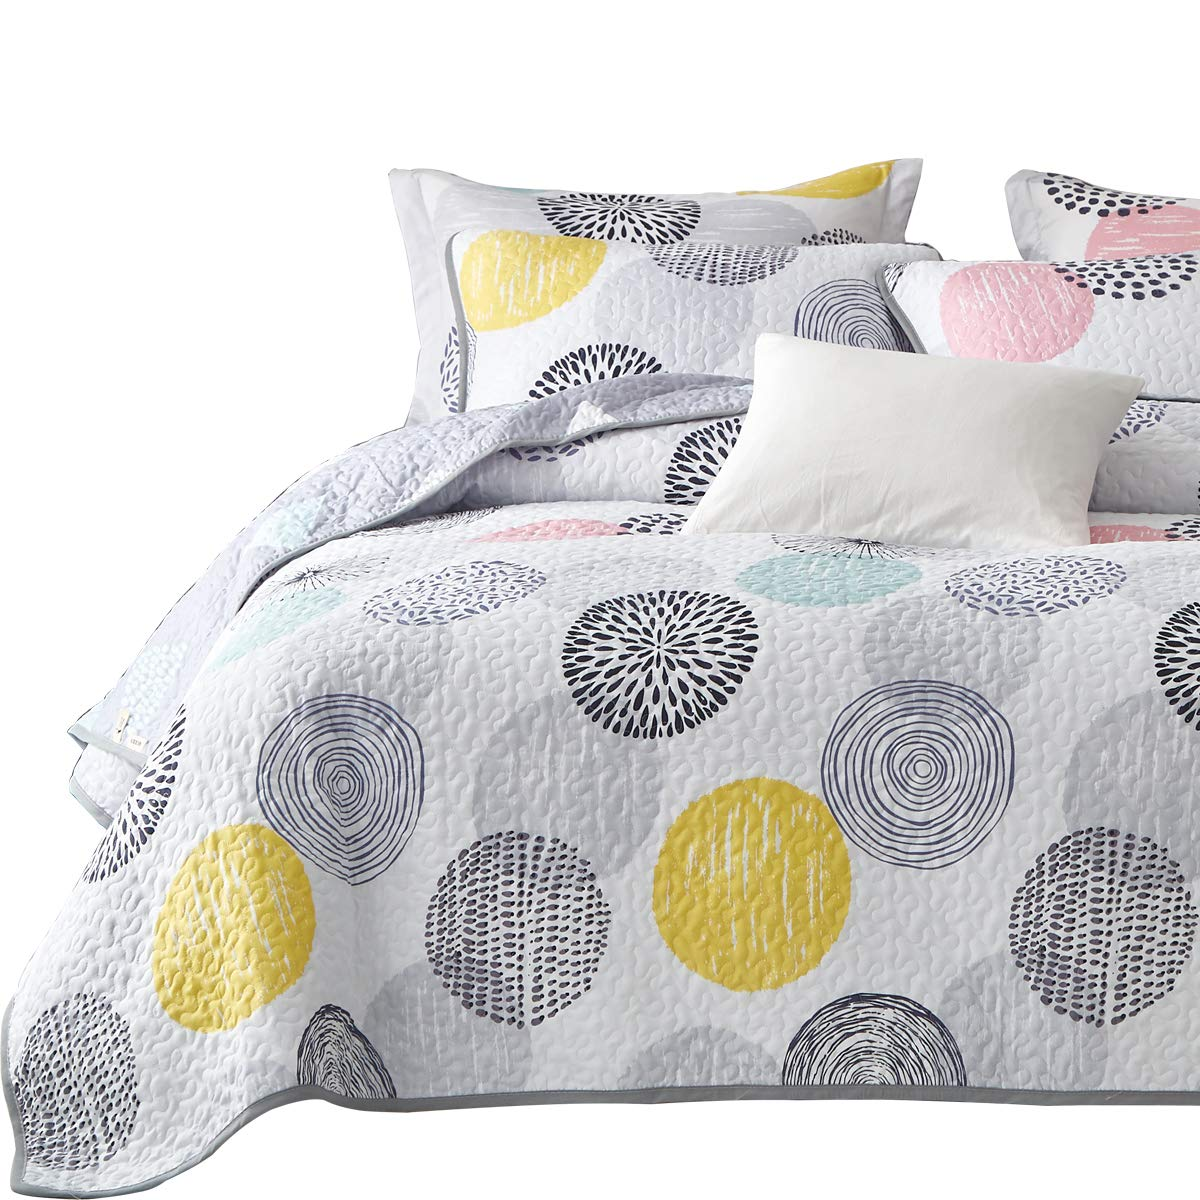 Uozzi Bedding 3 Piece Reversible Quilt Set Queen Size 92x90 Soft Microfiber Lightweight Coverlet Bedspread Summer Comforter Set Bed Cover Blanket for All Season Colorful Dots (1 Quilt+ 2 Shams)